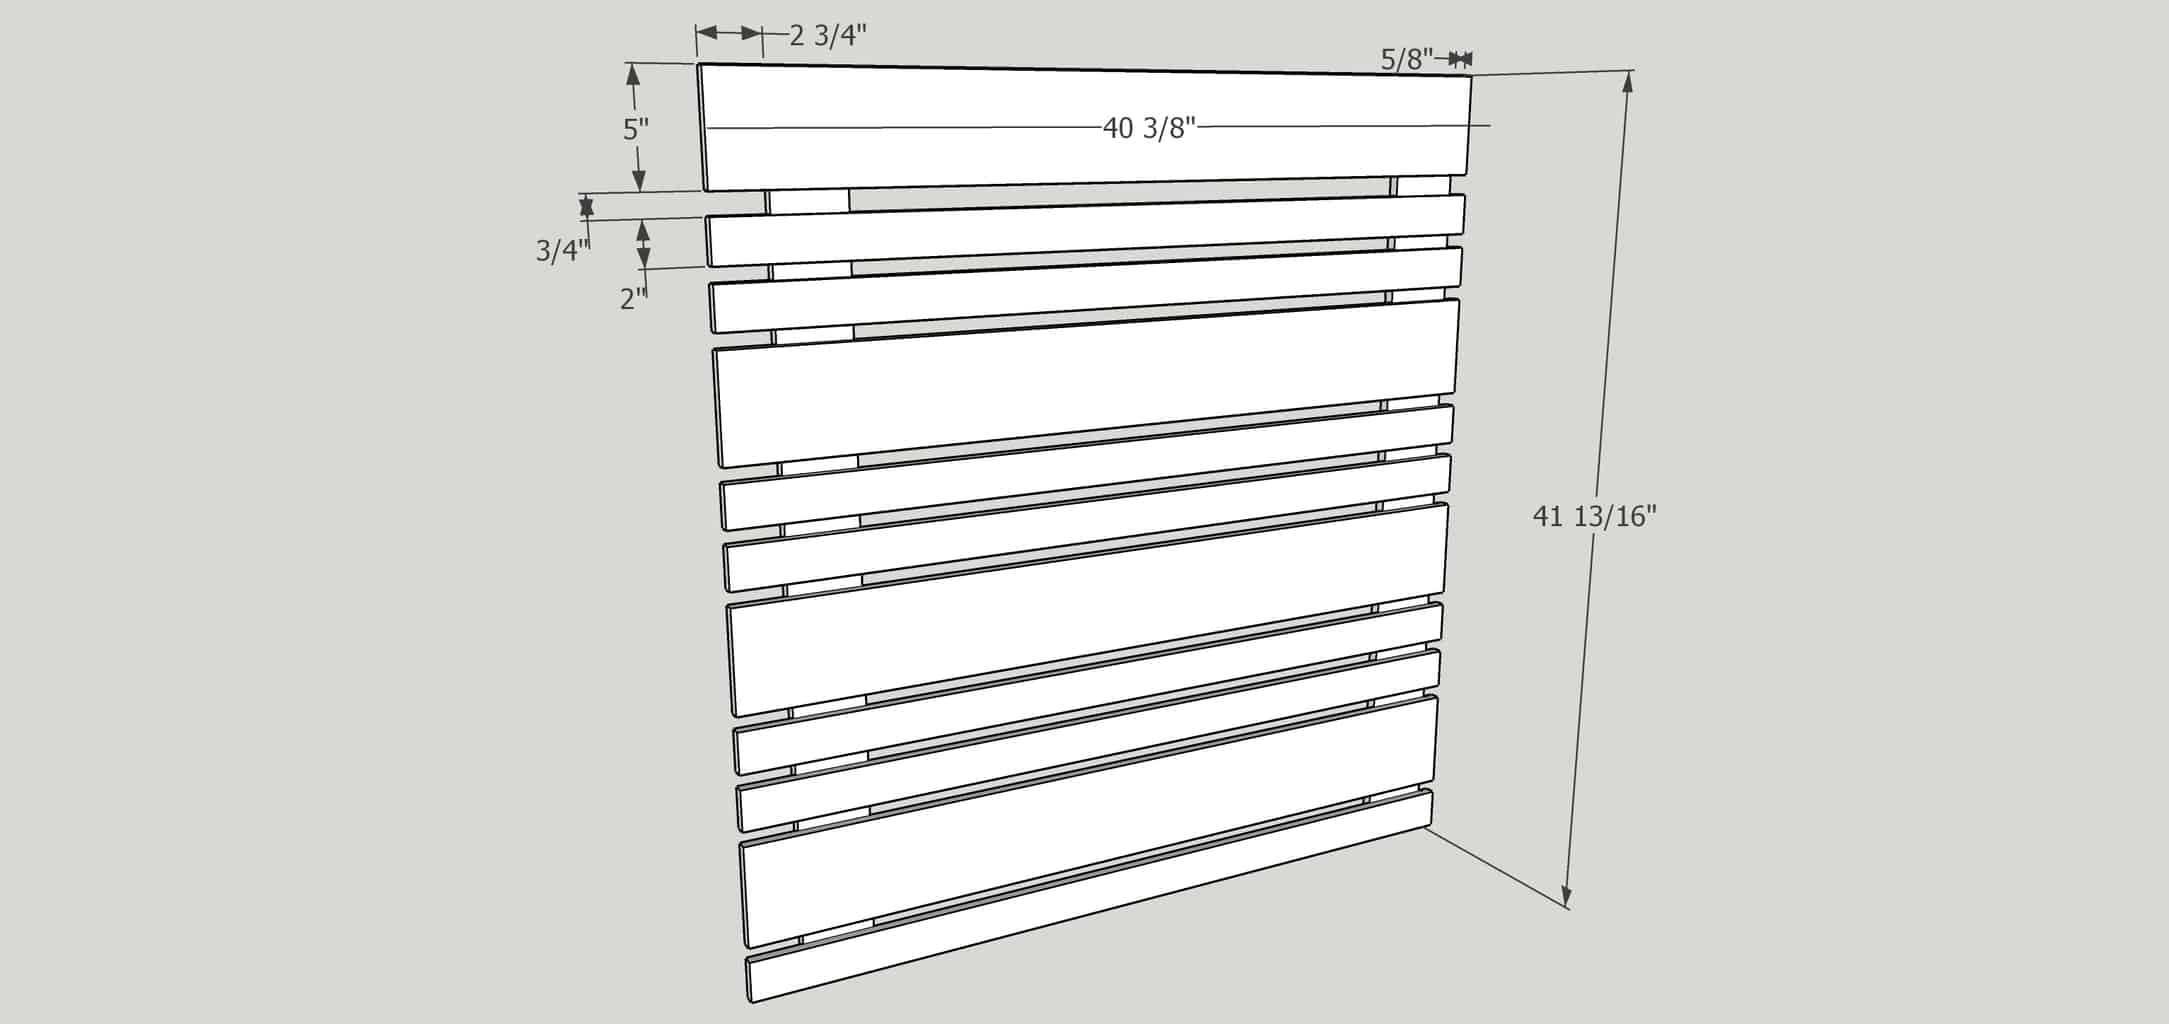 removable fence panel dimensions